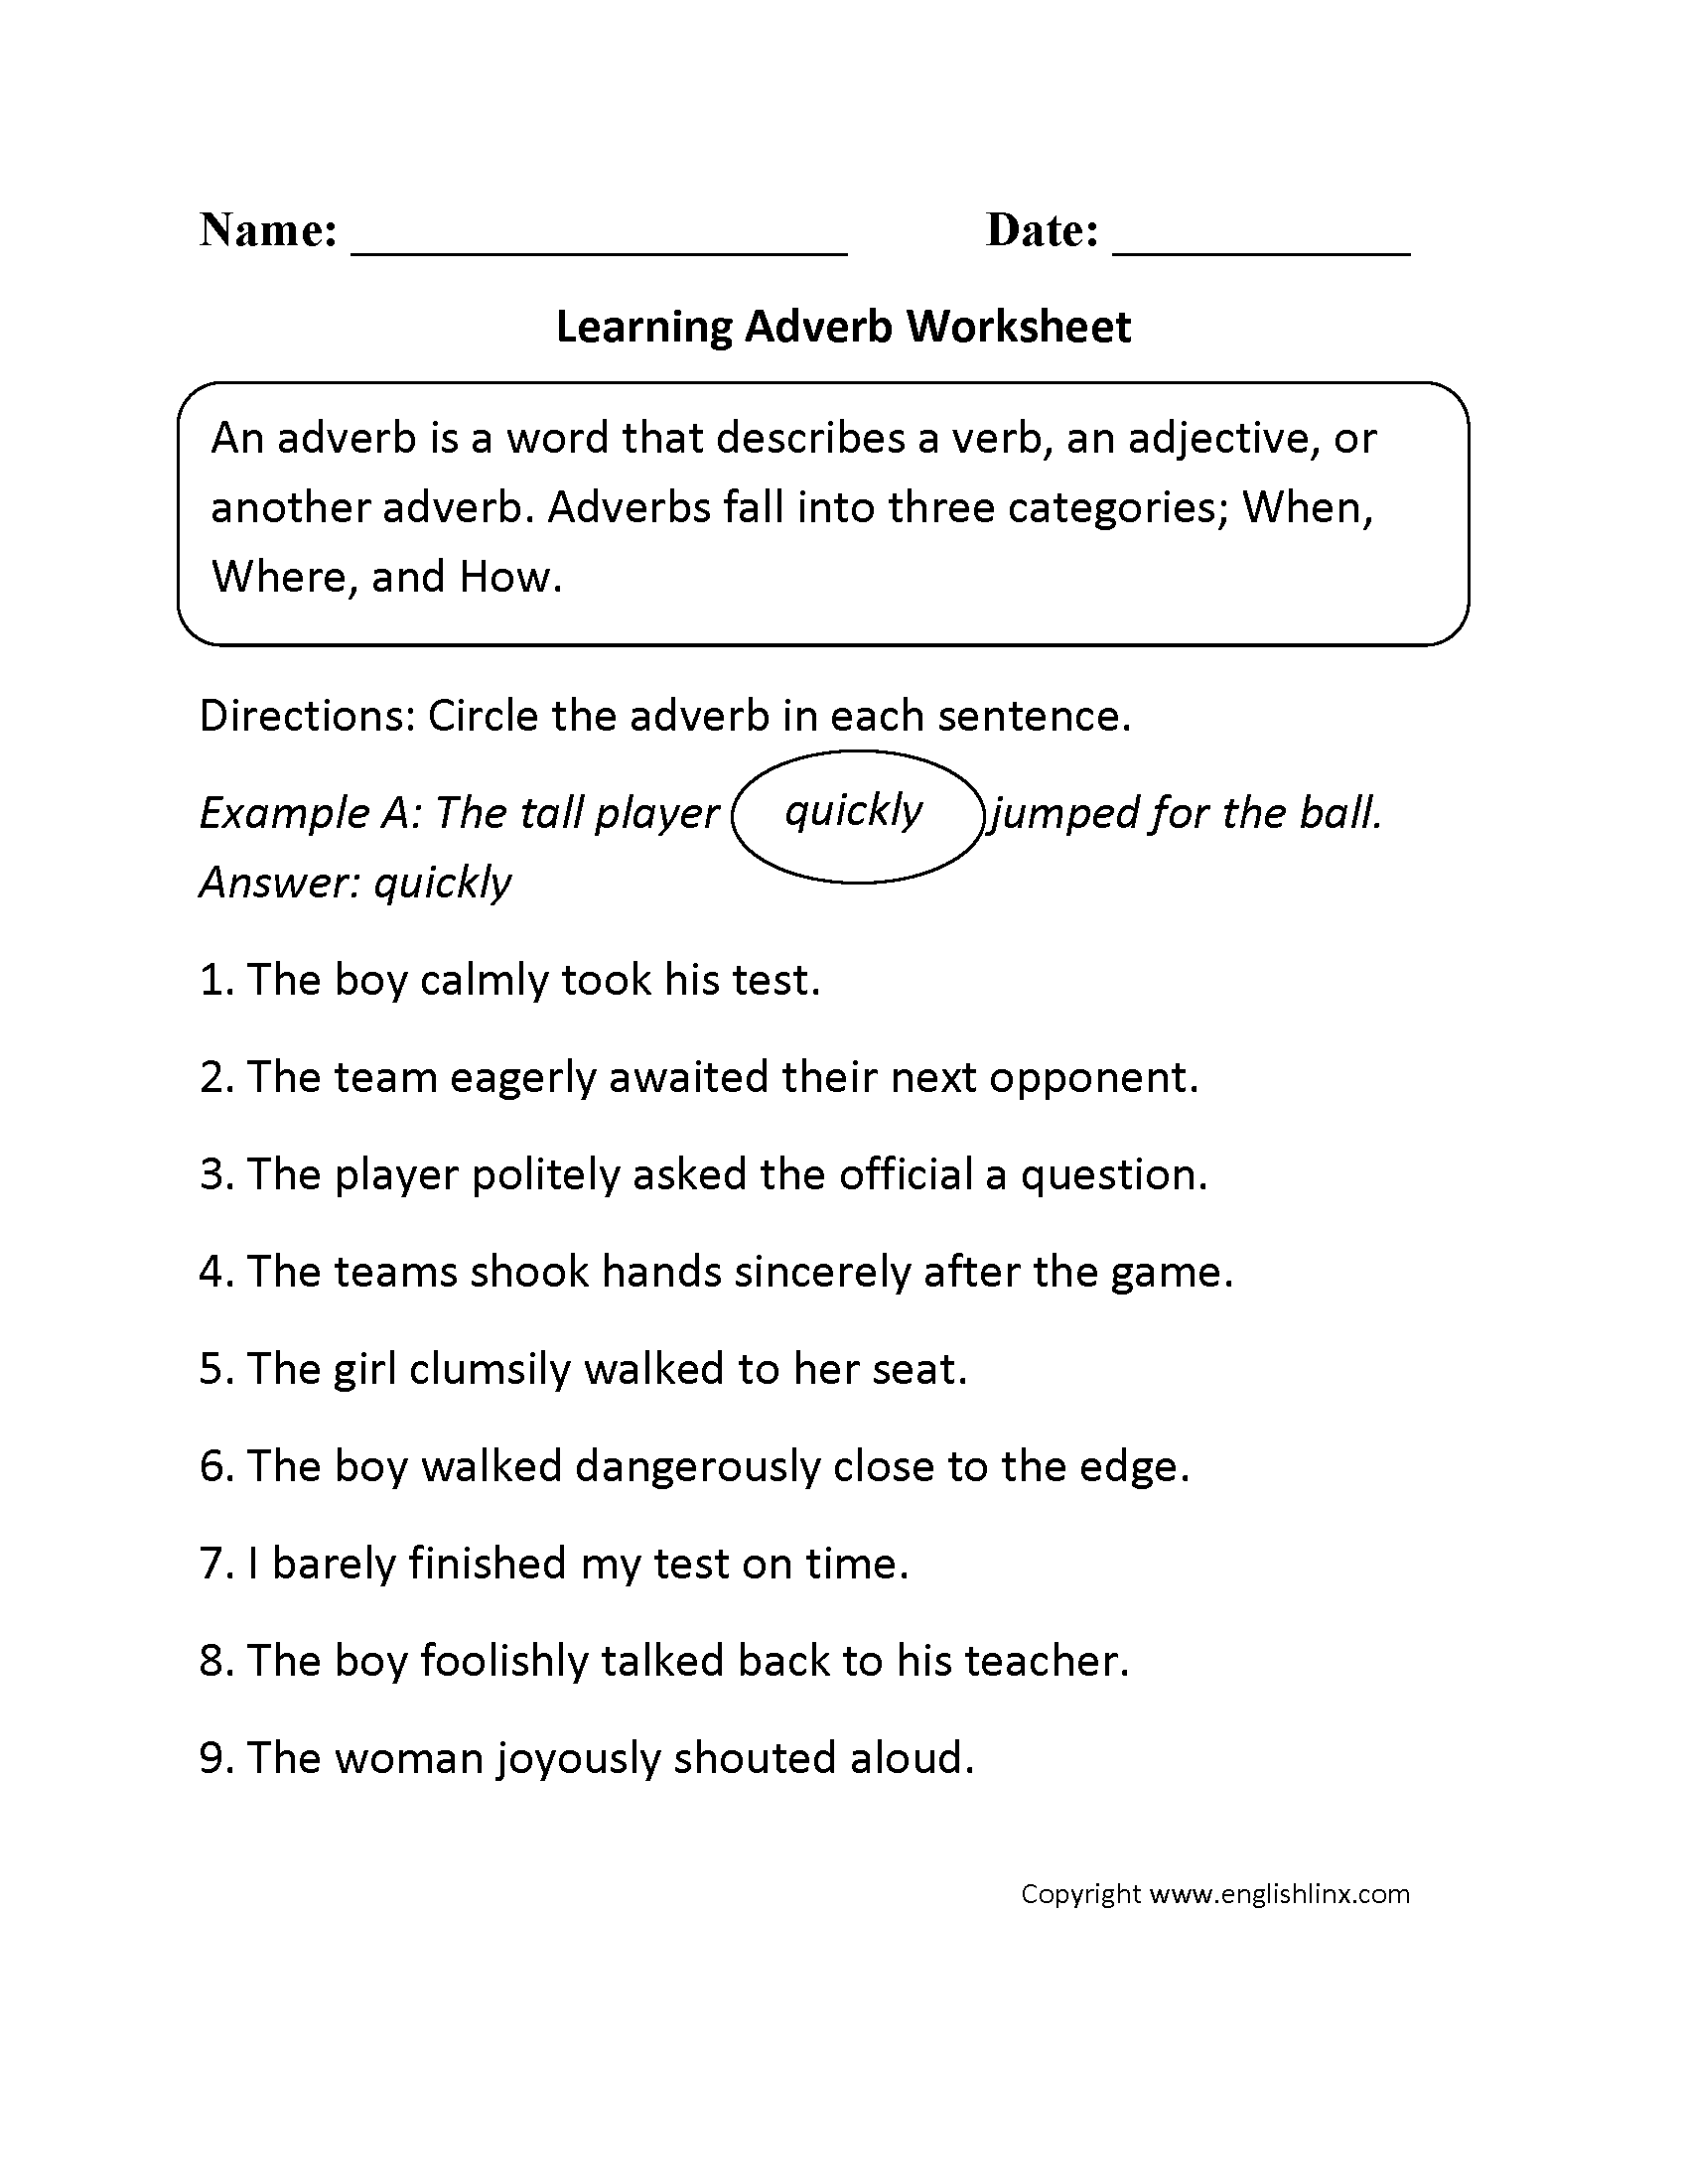 Worksheets Adverb Worksheets 5th Grade parts speech worksheets adverb learning worksheets